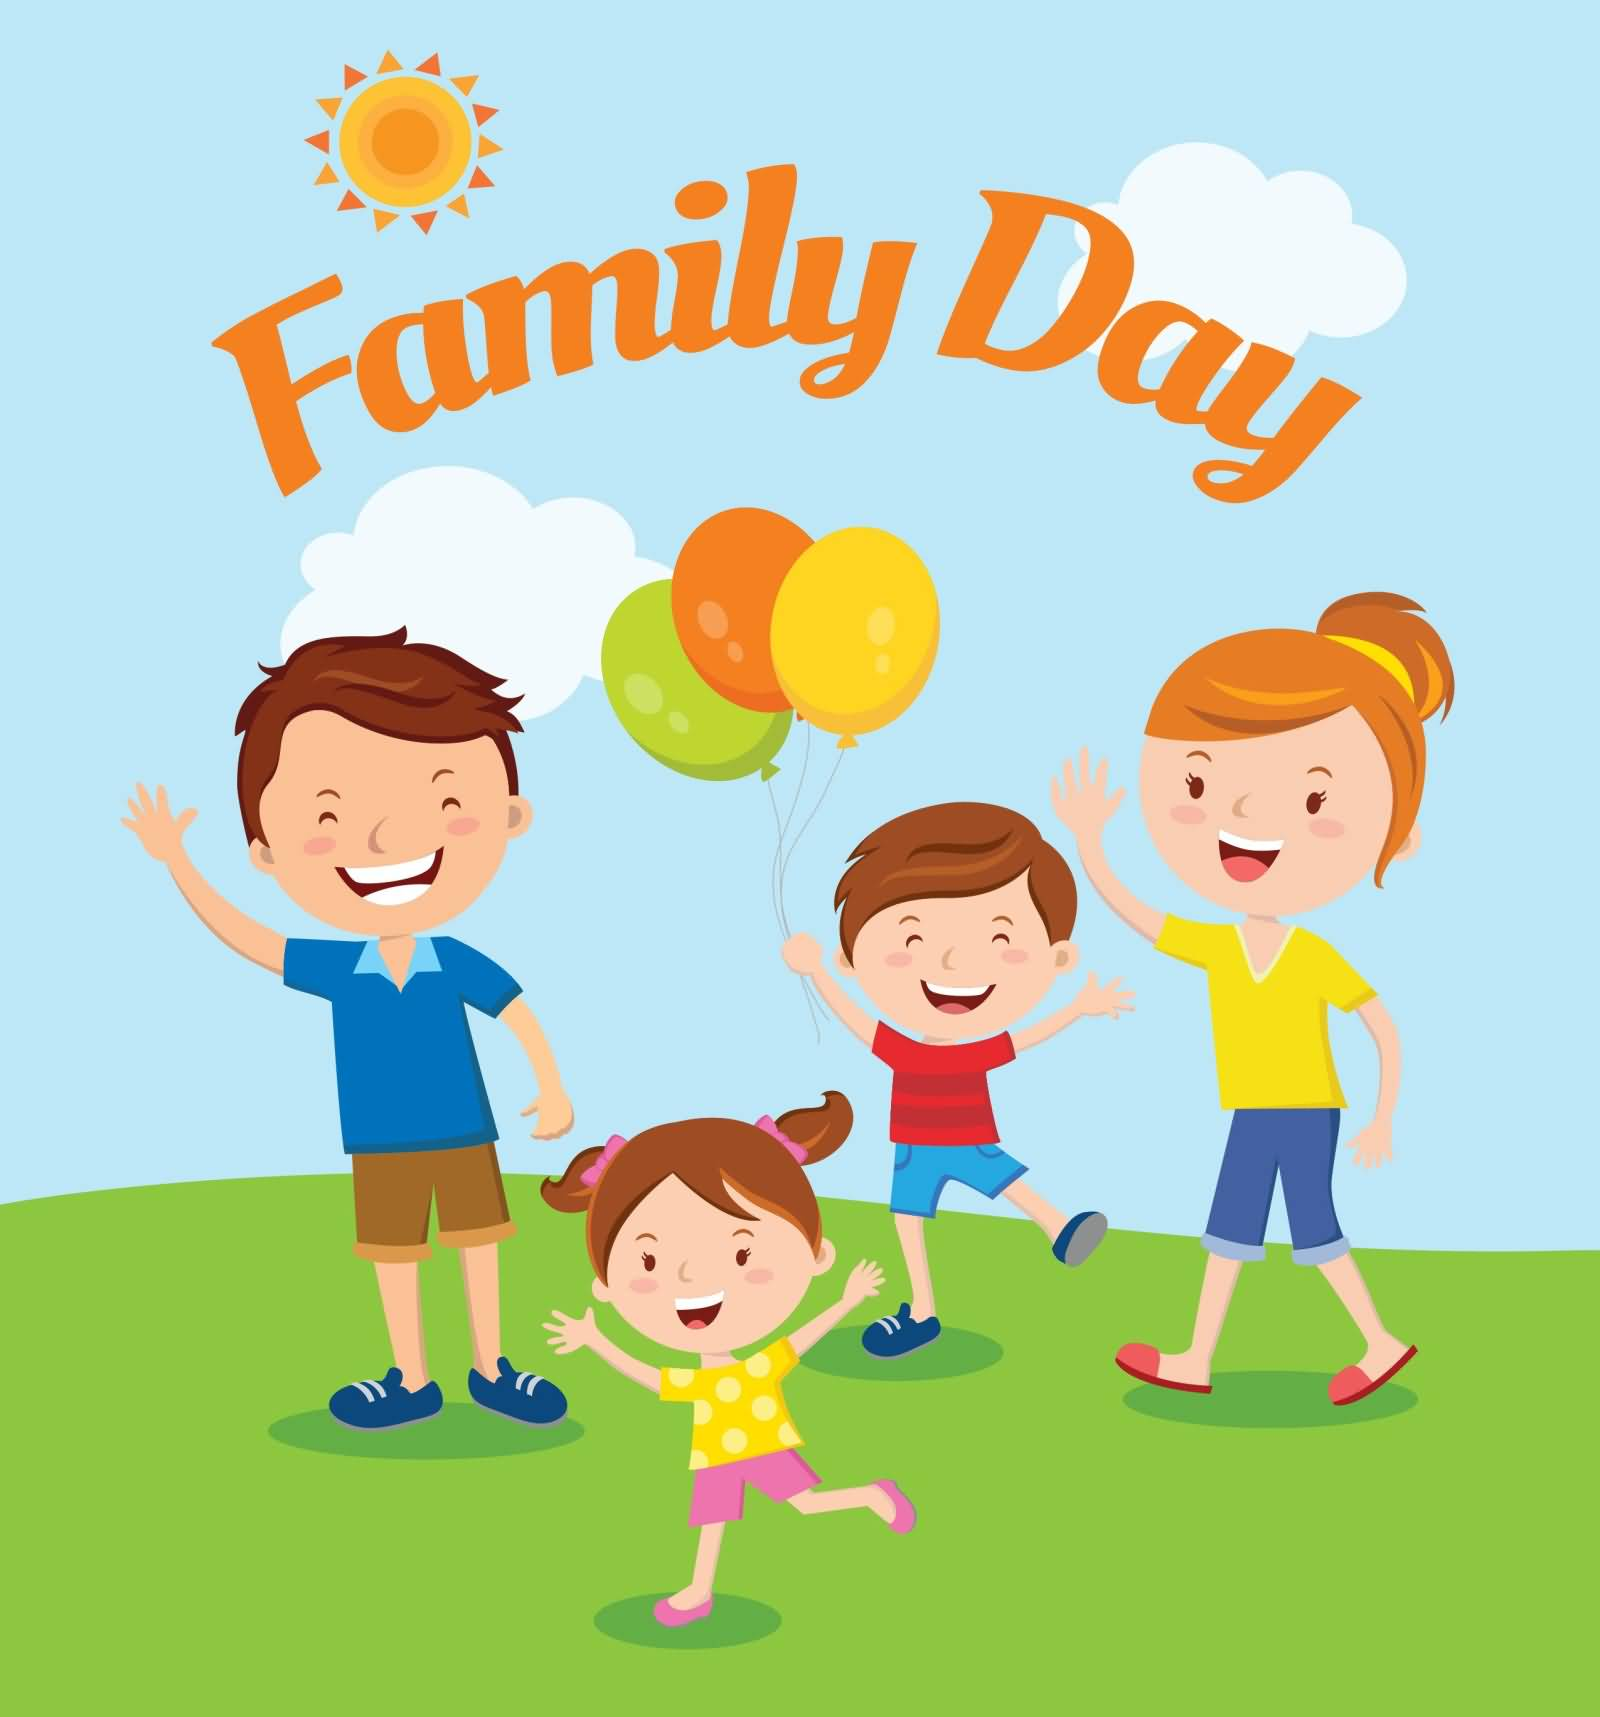 23-Family Day Wishes